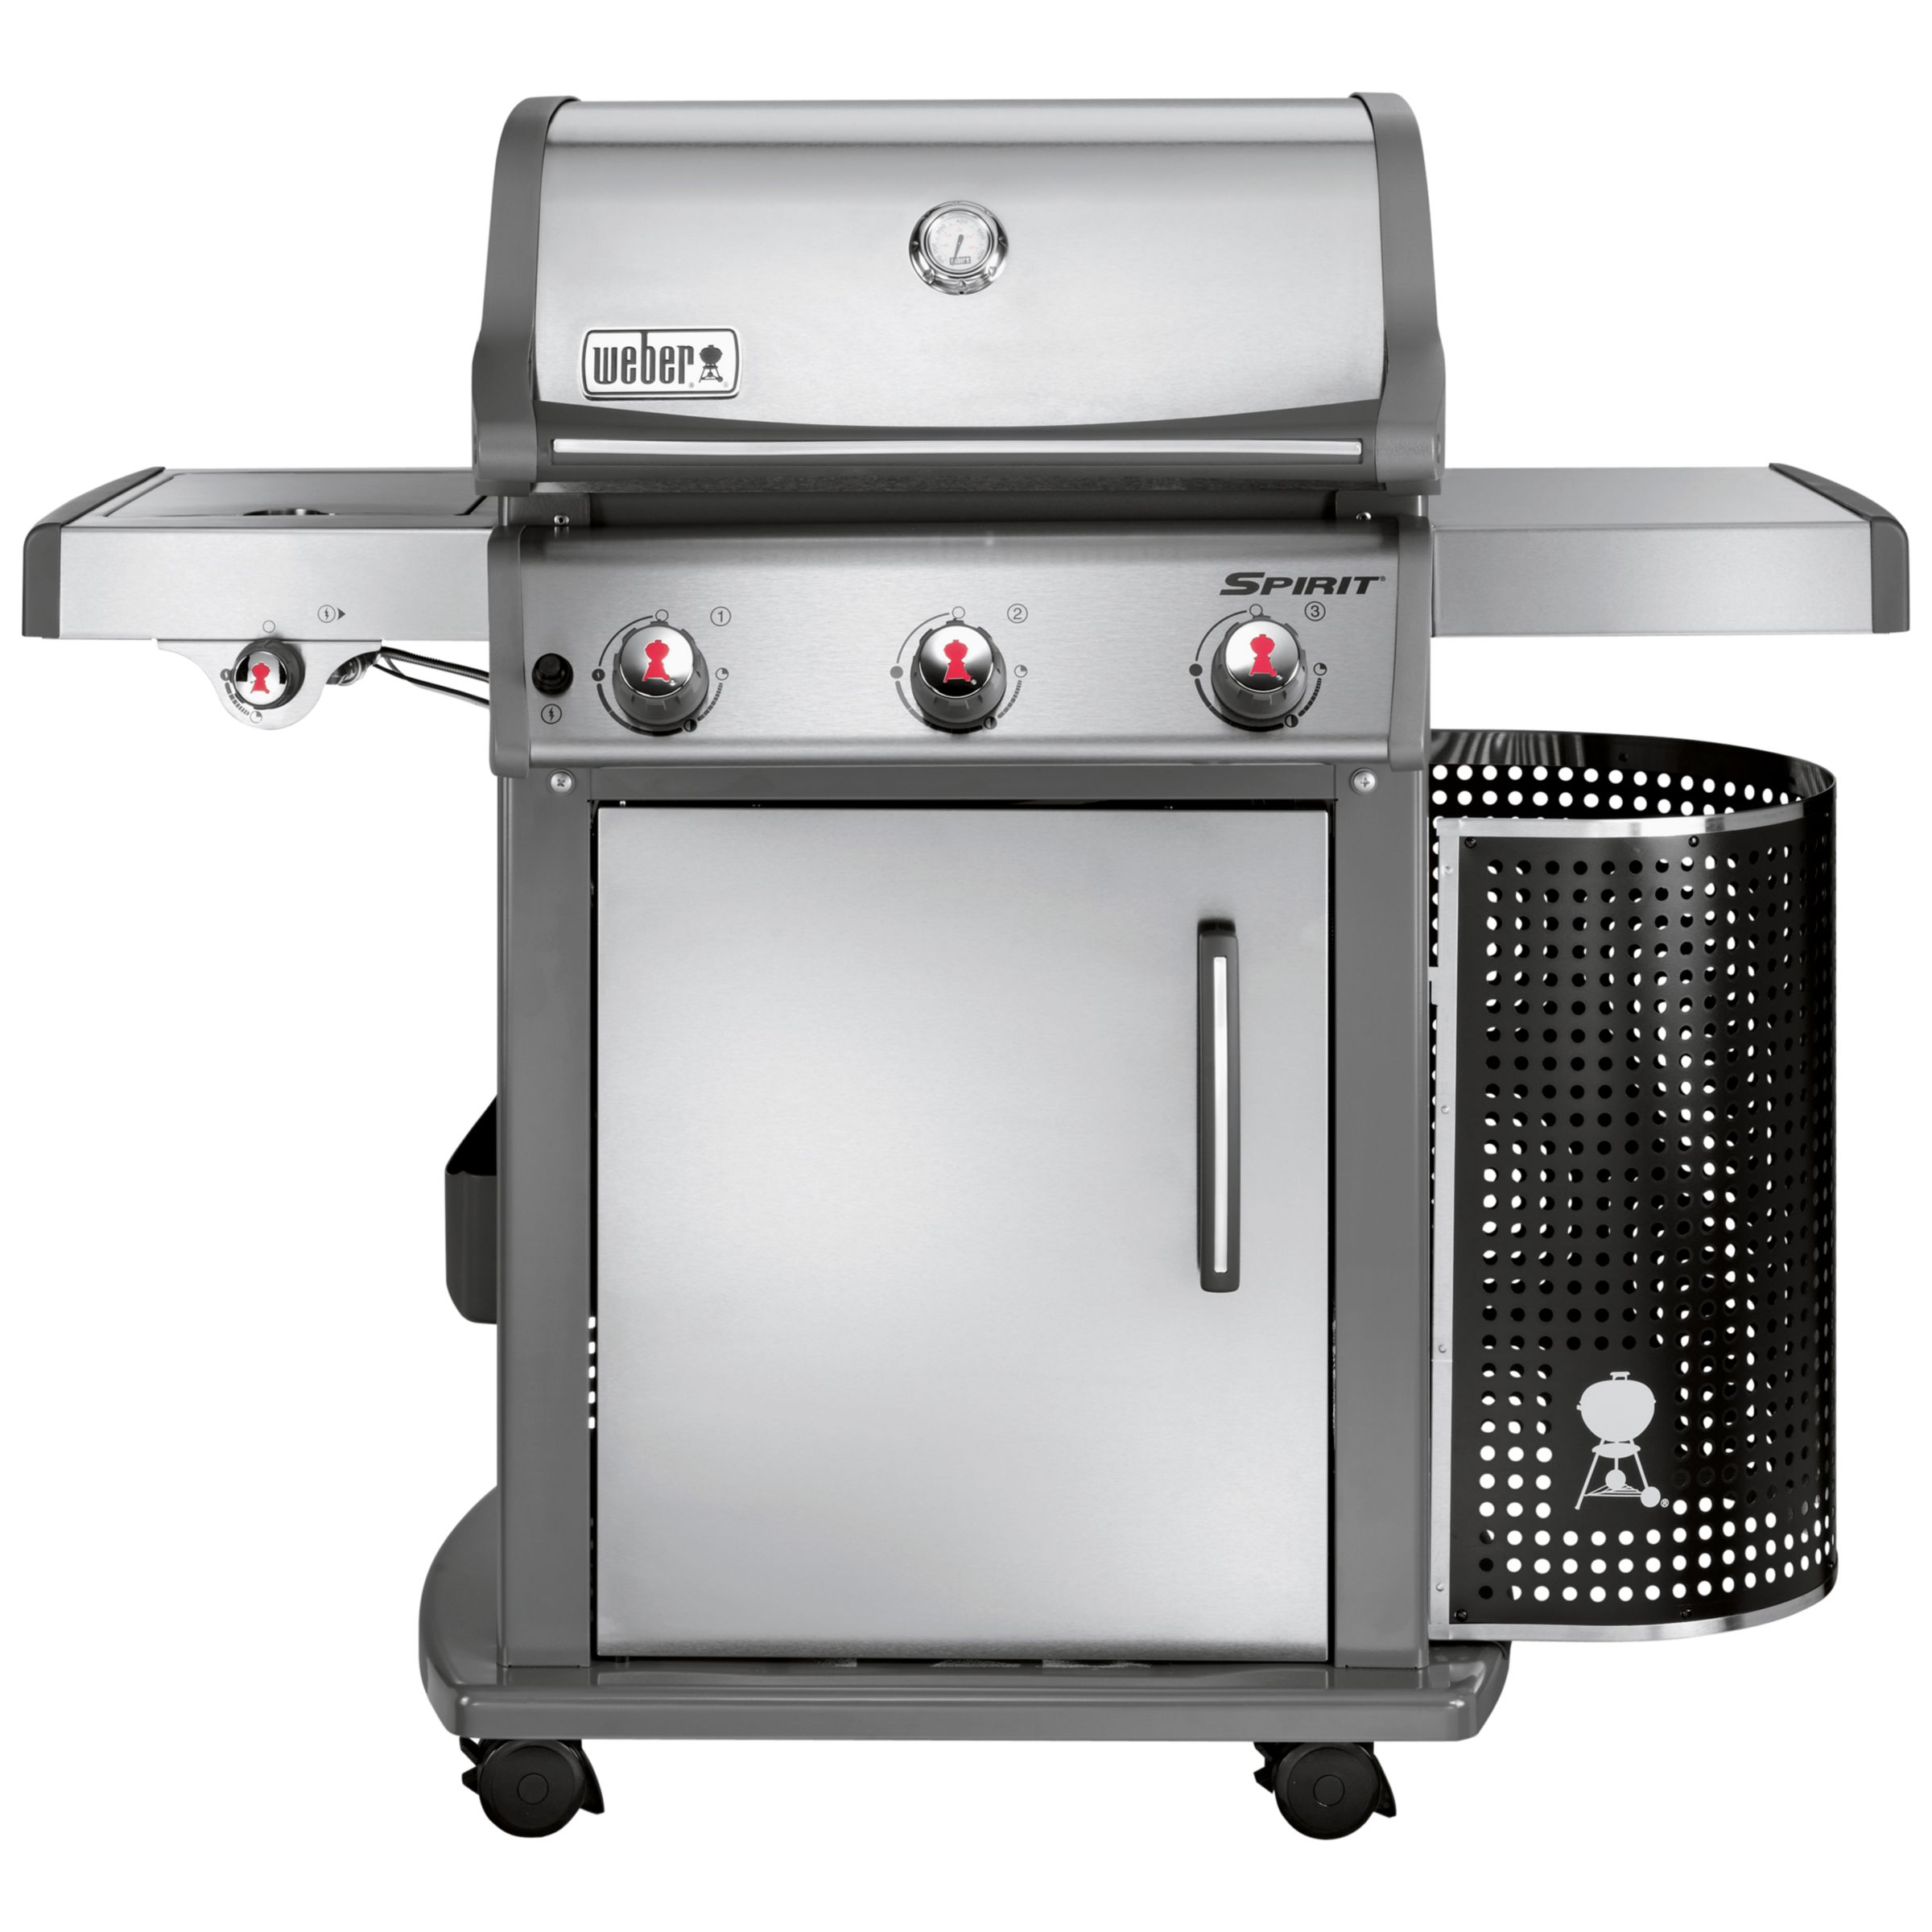 weber spirit e330 gas grill father lynx 42 grill kitchenaid vs weber grill okayimage weber. Black Bedroom Furniture Sets. Home Design Ideas